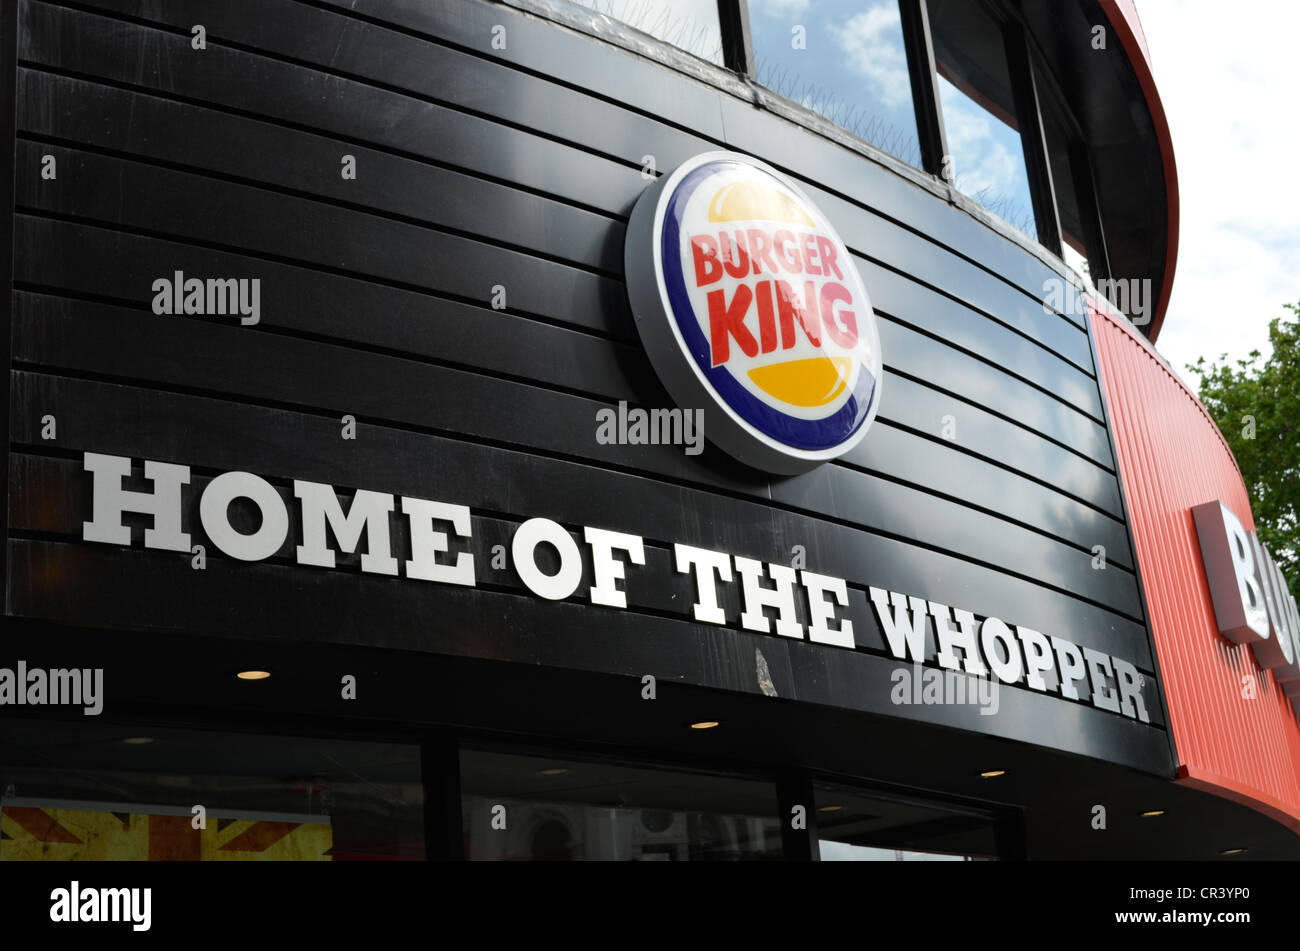 Home of the whopper sign in London's Leicester square Burger King - Stock Image